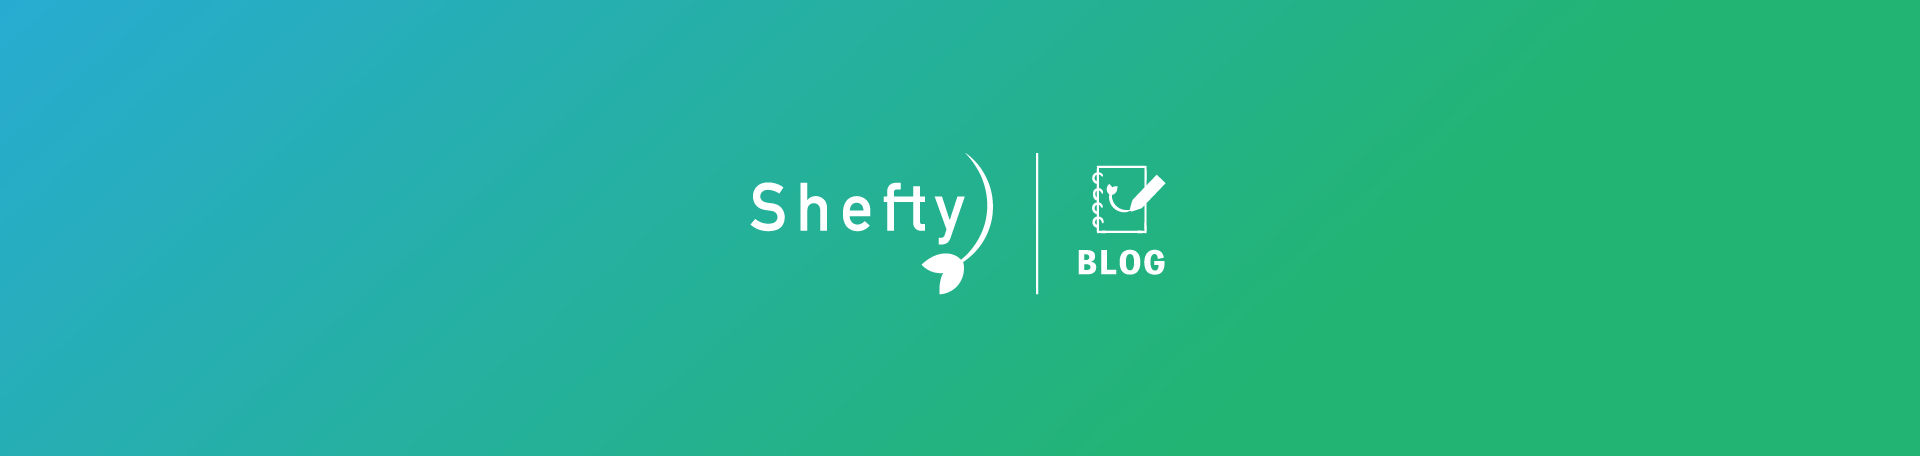 Shefty's Blog